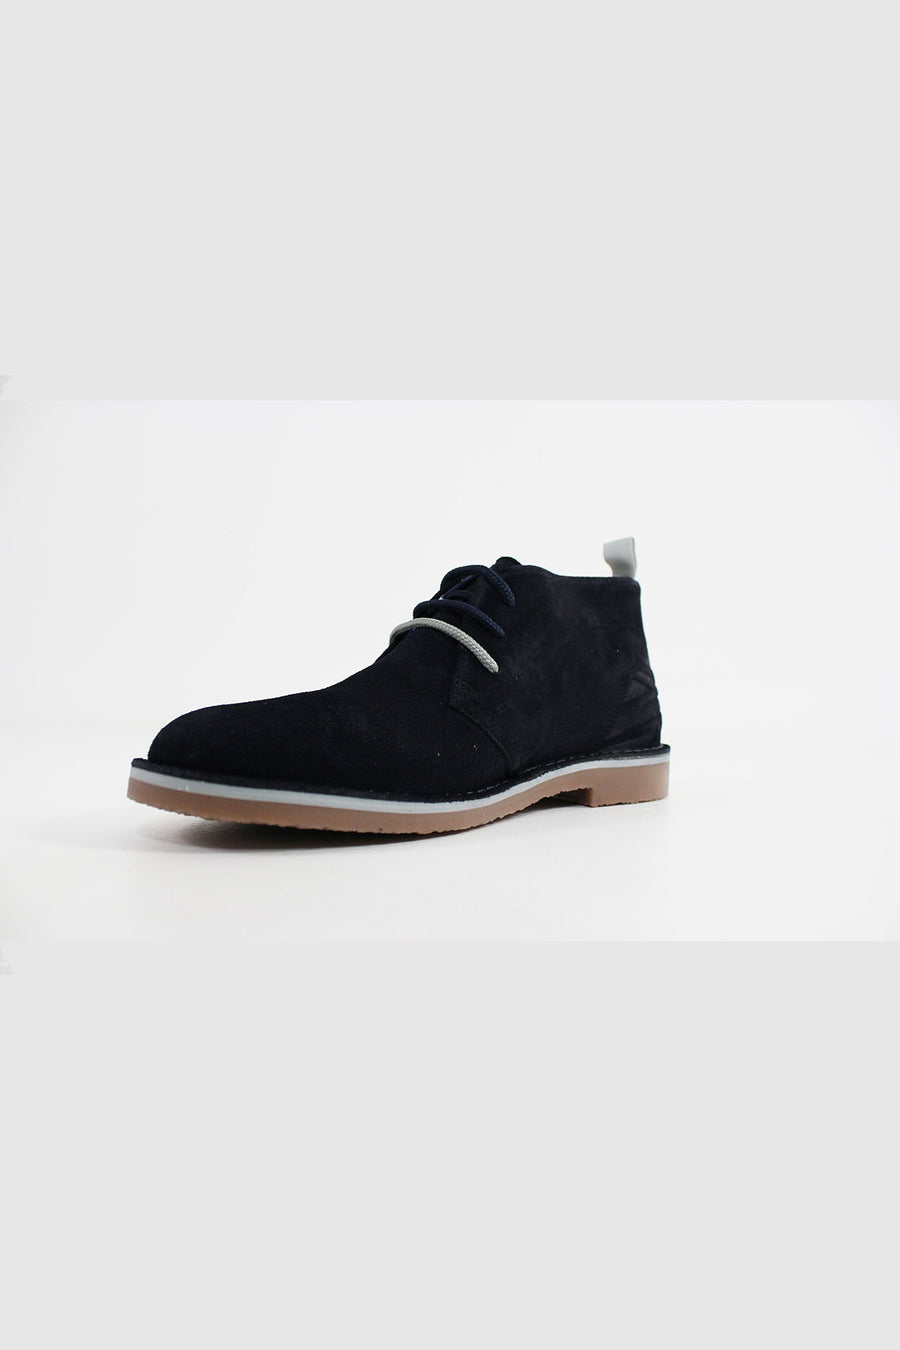 Submarine London - New Manchester Suede (Flag/Ciment)